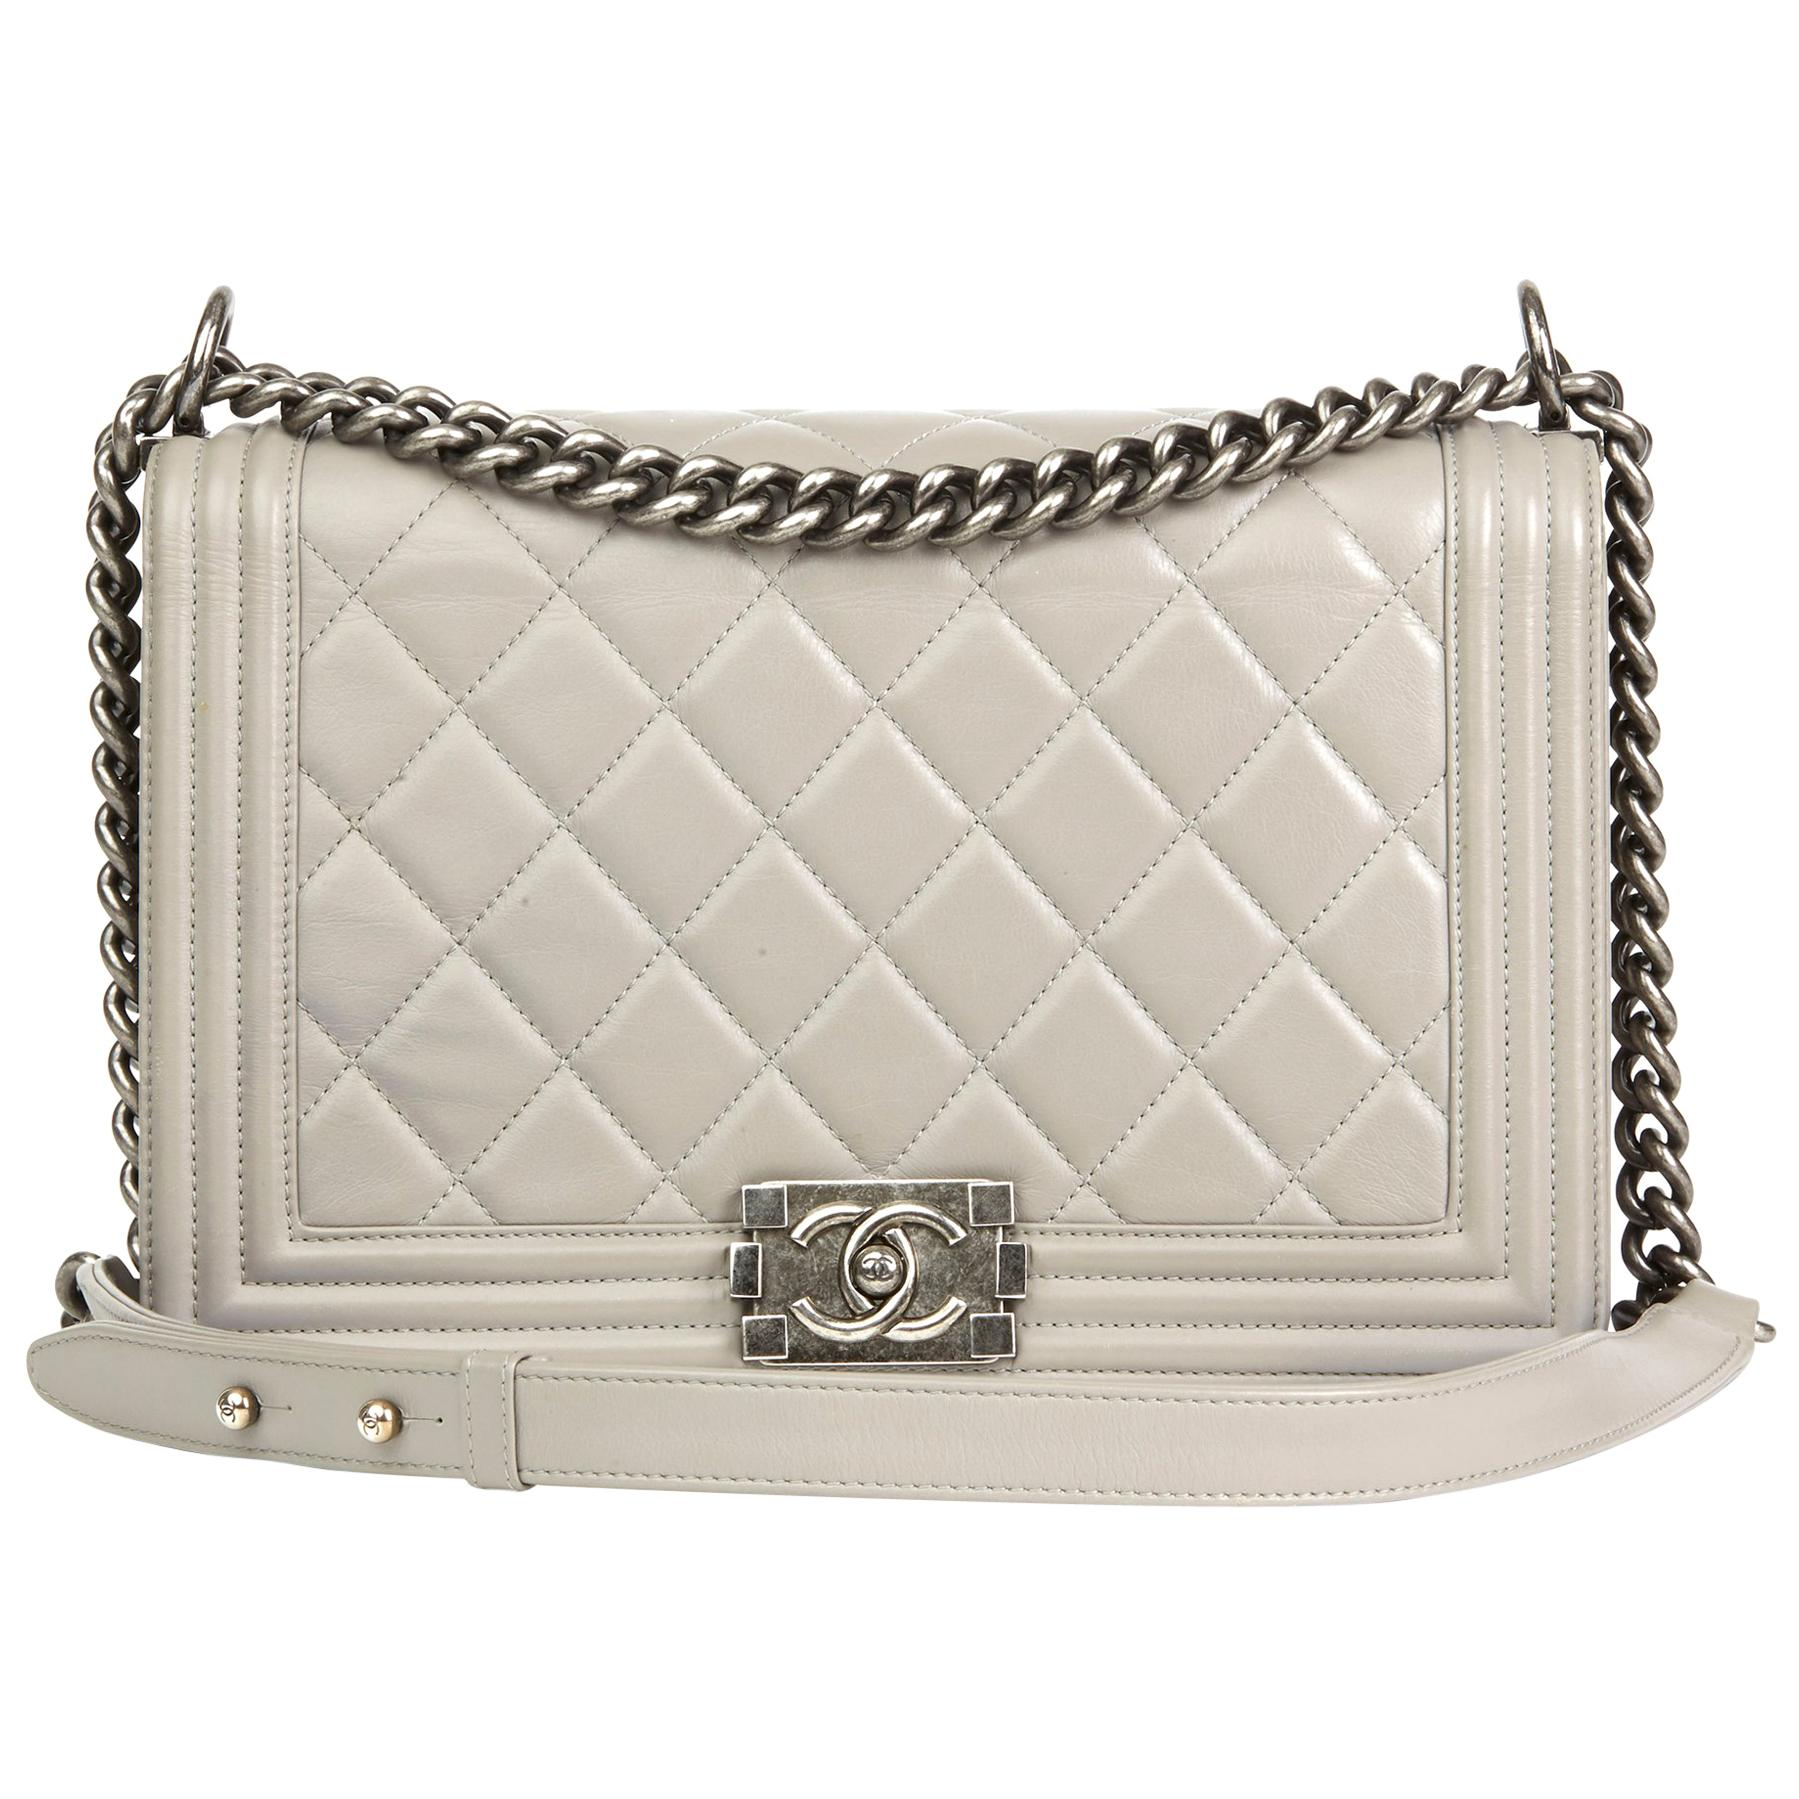 6c61fd979446 Vintage Chanel Crossbody Bags and Messenger Bags - 590 For Sale at 1stdibs  - Page 3